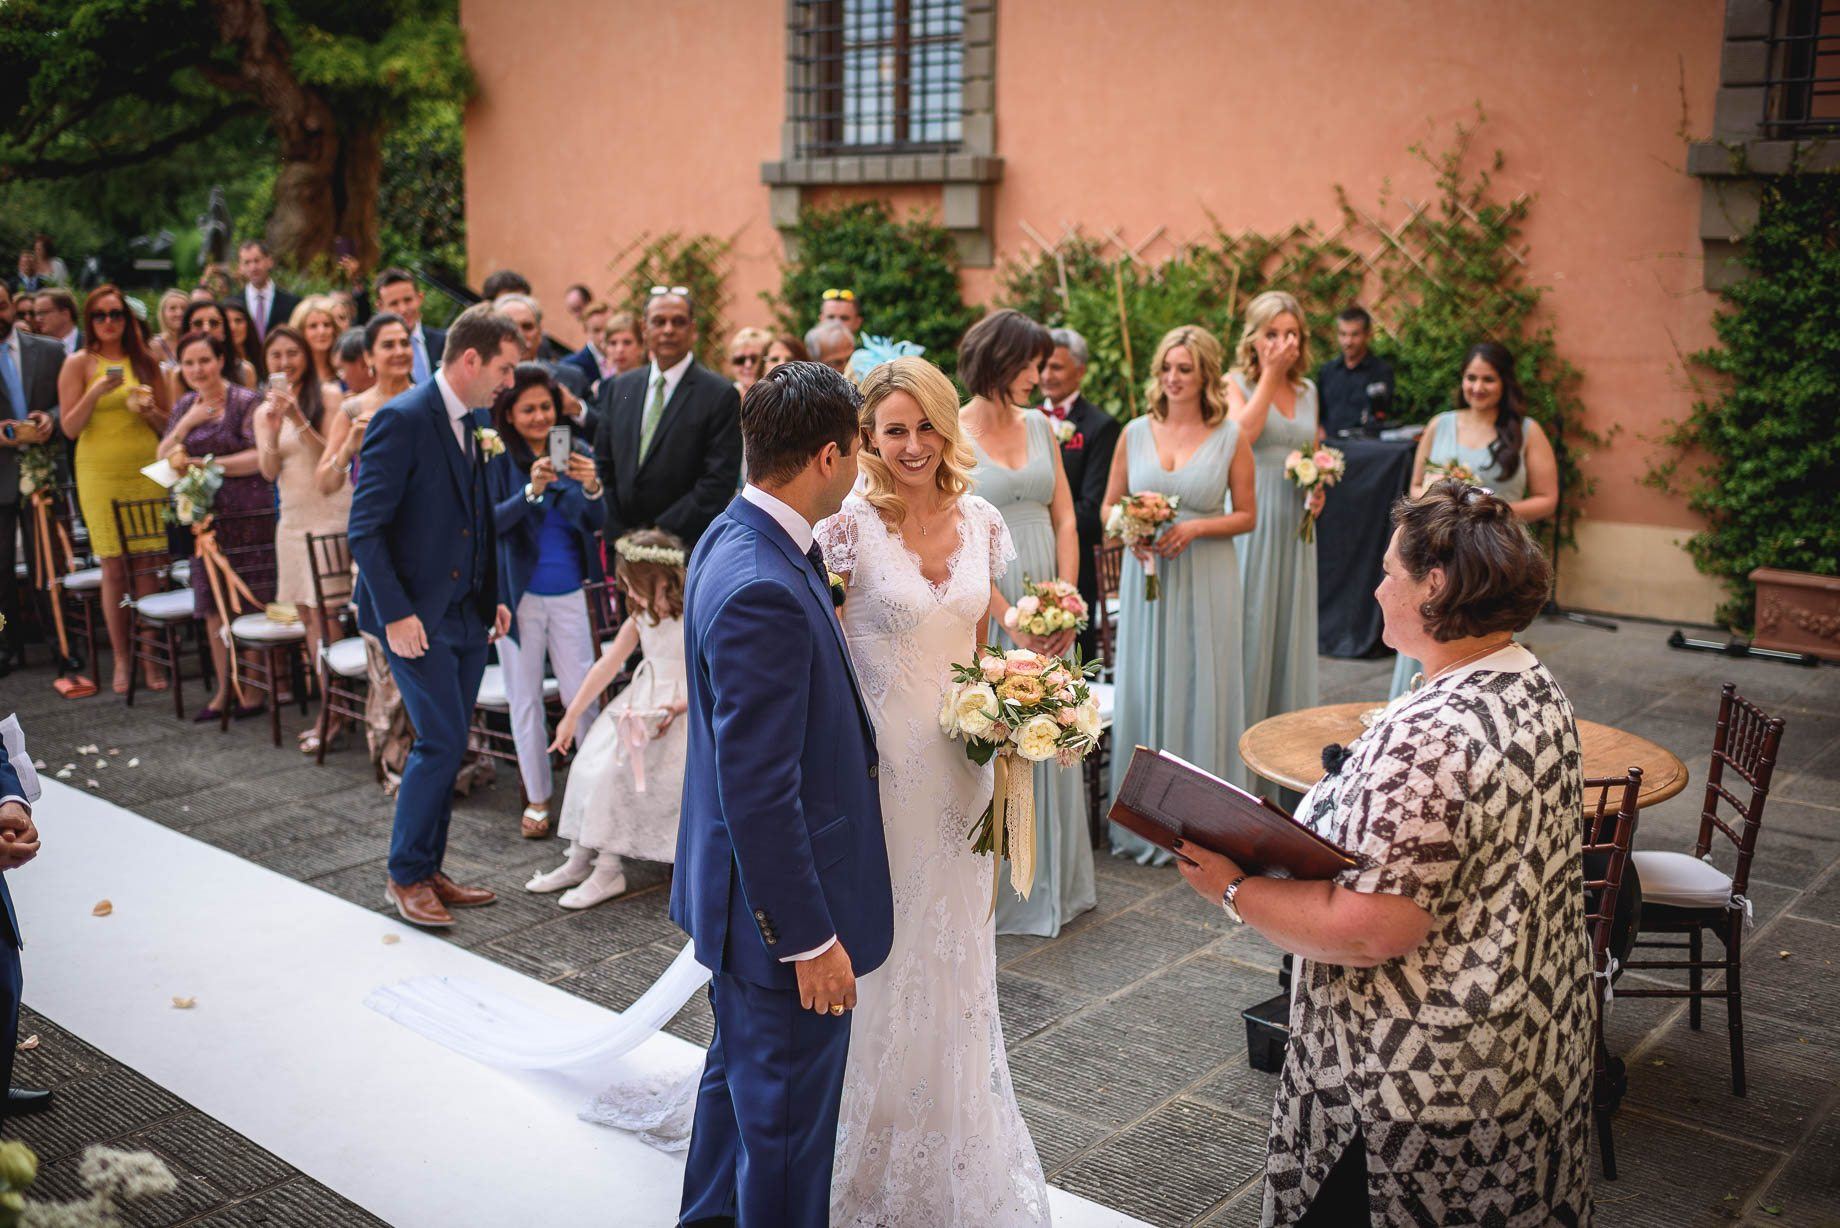 Tuscany wedding photography - Roisin and Moubin - Guy Collier Photography (106 of 251)